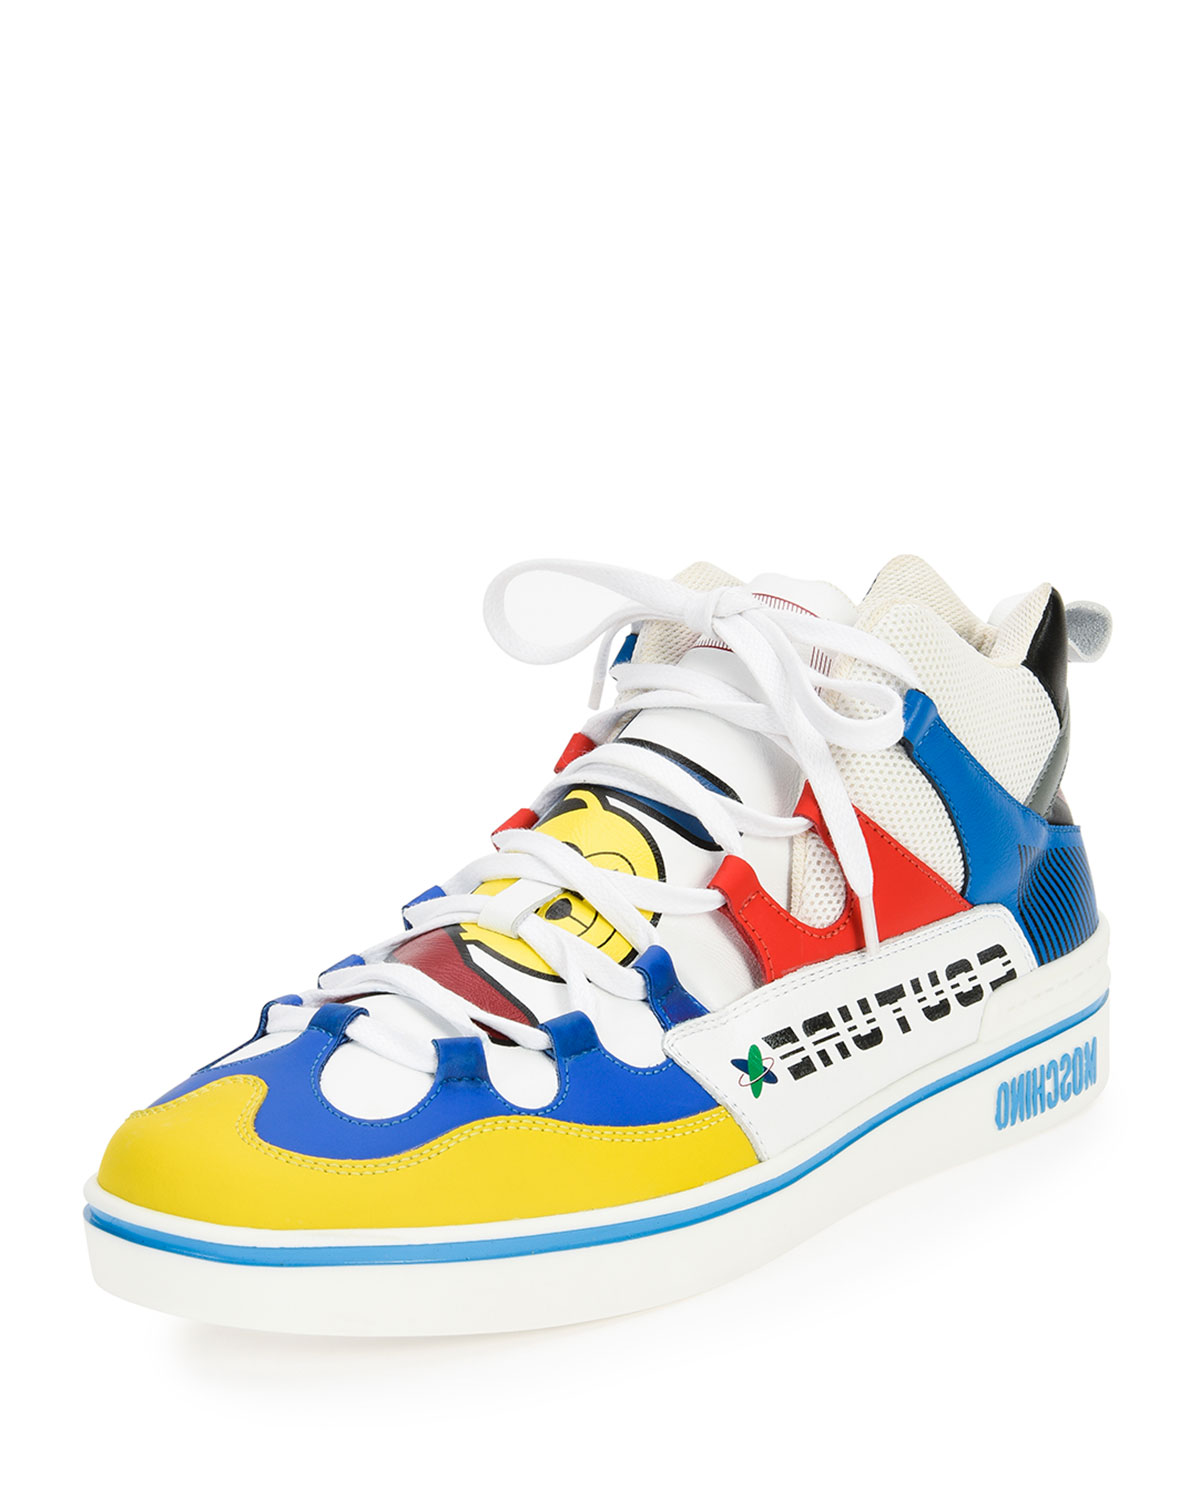 Moschino Toy Multicolored Mid-Top